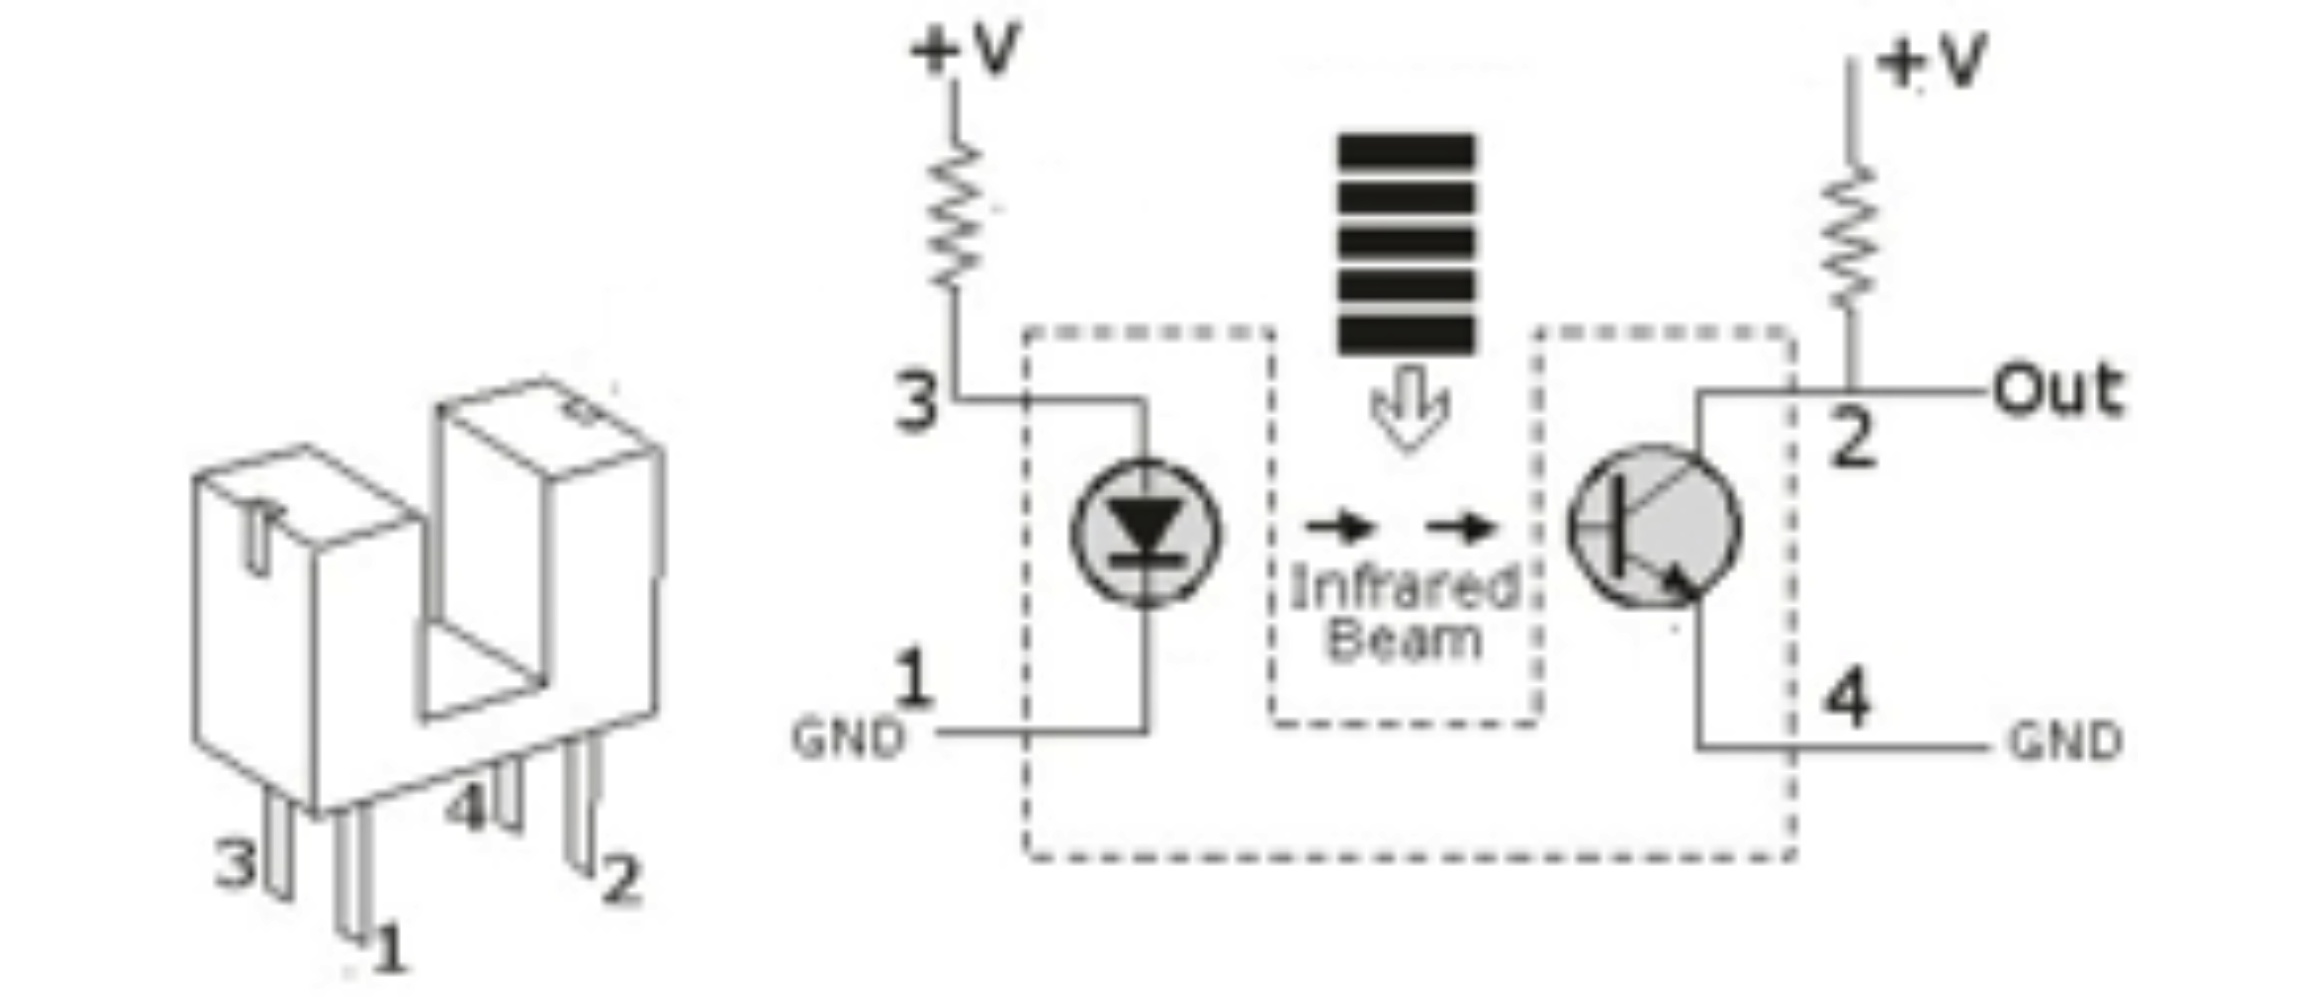 Photo Interrupter Diagram - This diagram proved to be extremely helpful when prototyping. It helped solve our wiring issue with the photo gates quickly and effectively.